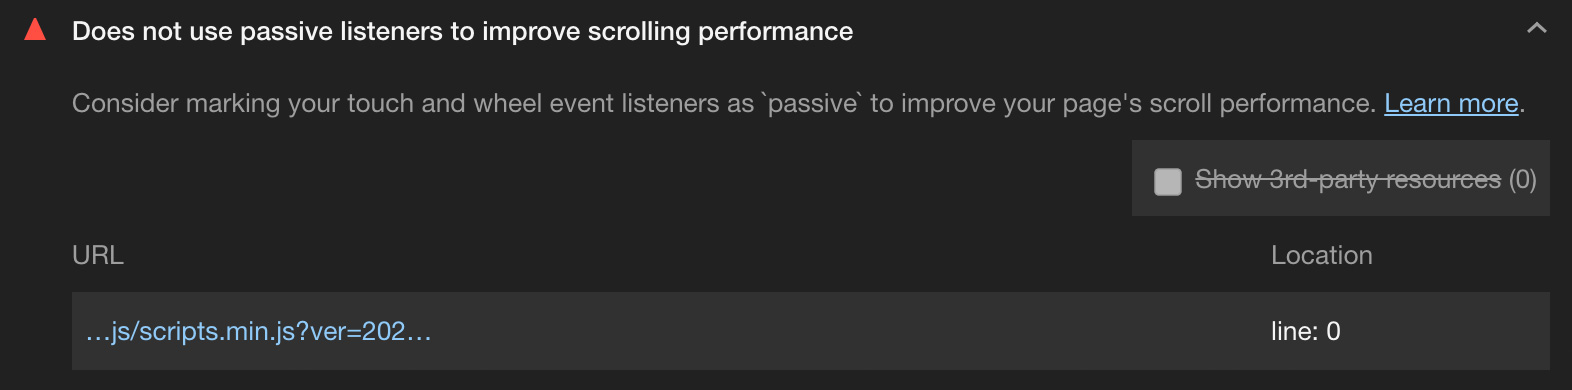 Lighthouse Performance Test Abschnitt: Does not use passive listeners to improve scrolling performance